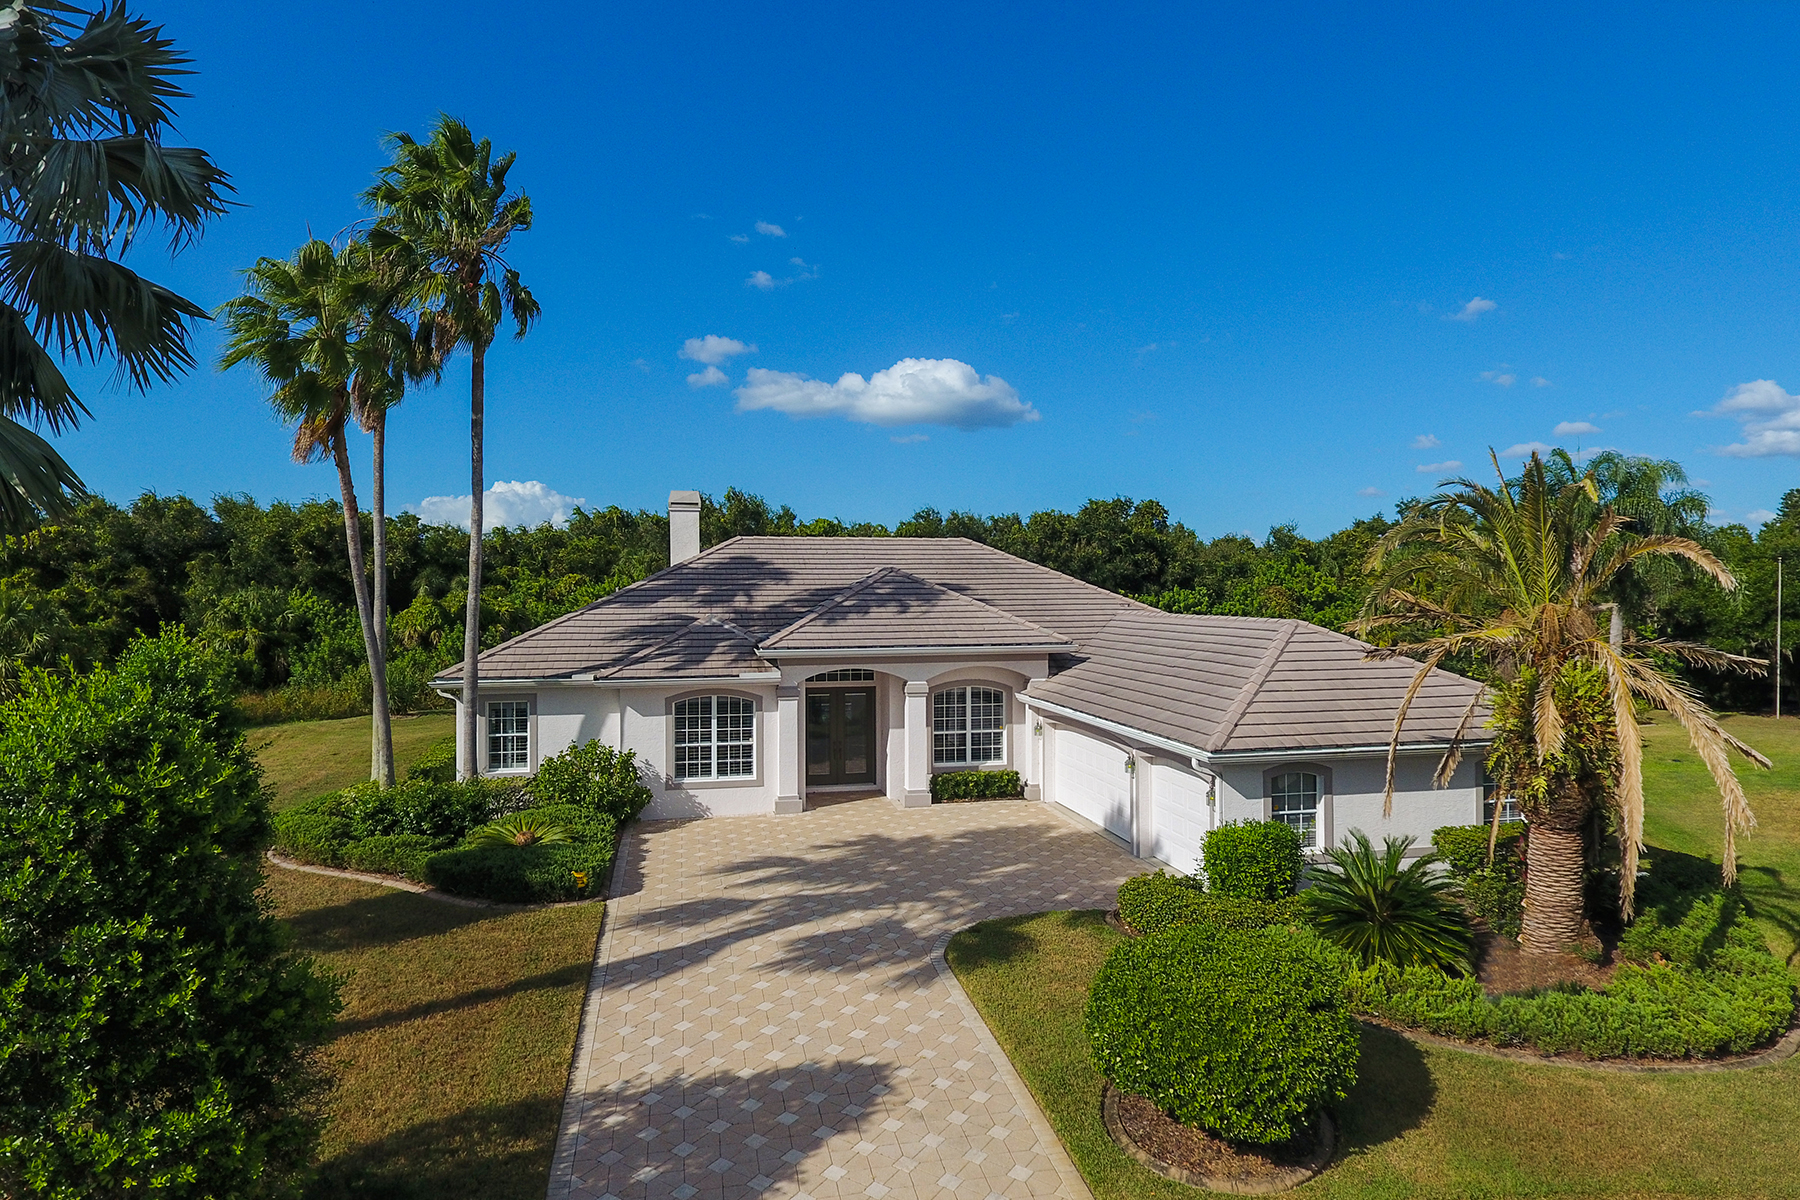 Single Family Homes for Sale at MOTE RANCH 6226 Stillwater Ct University Park, Florida 34201 United States